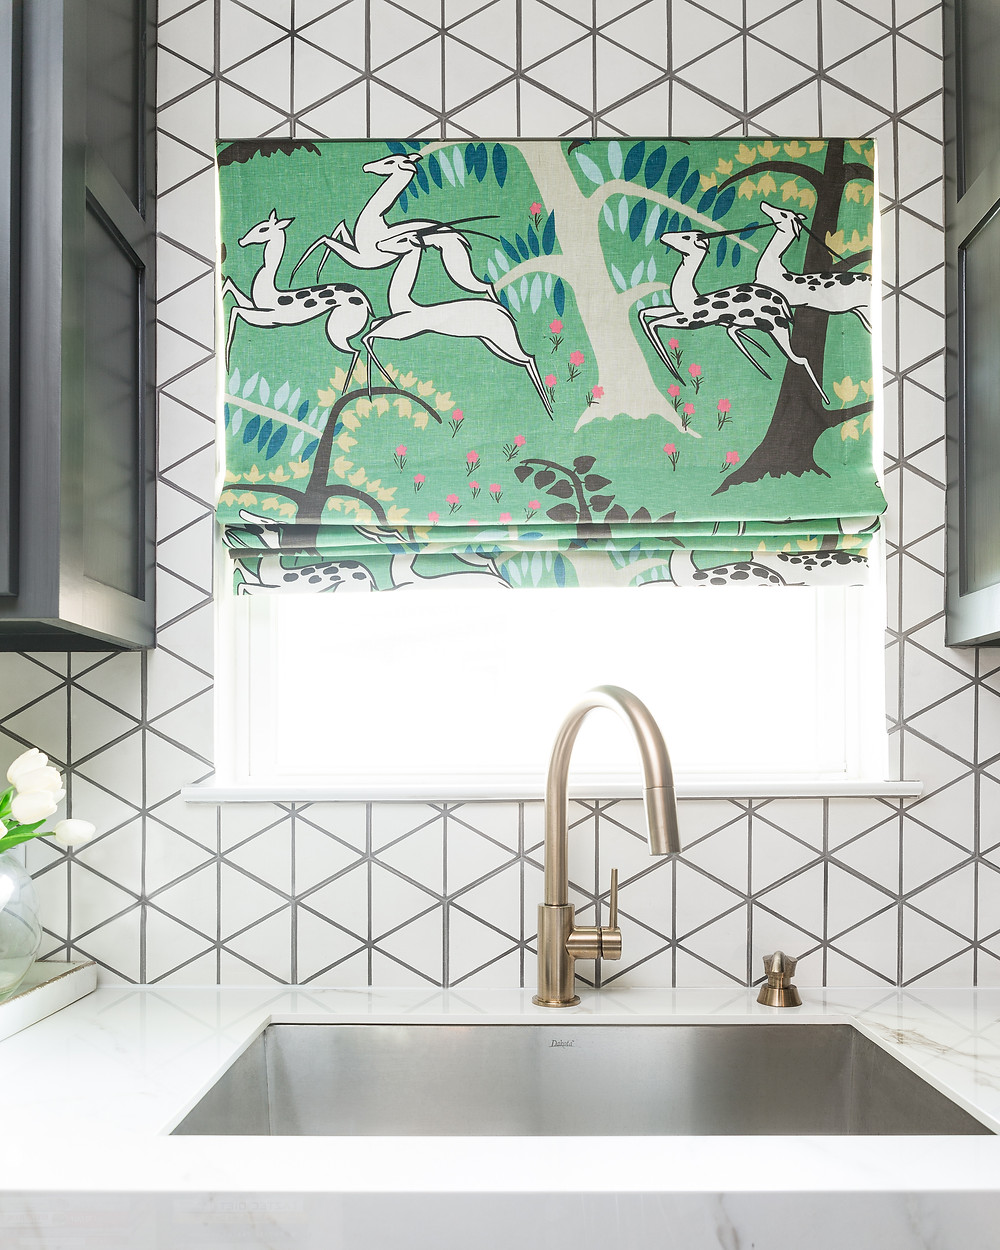 Roman shade in kitchen with cement tile backsplash